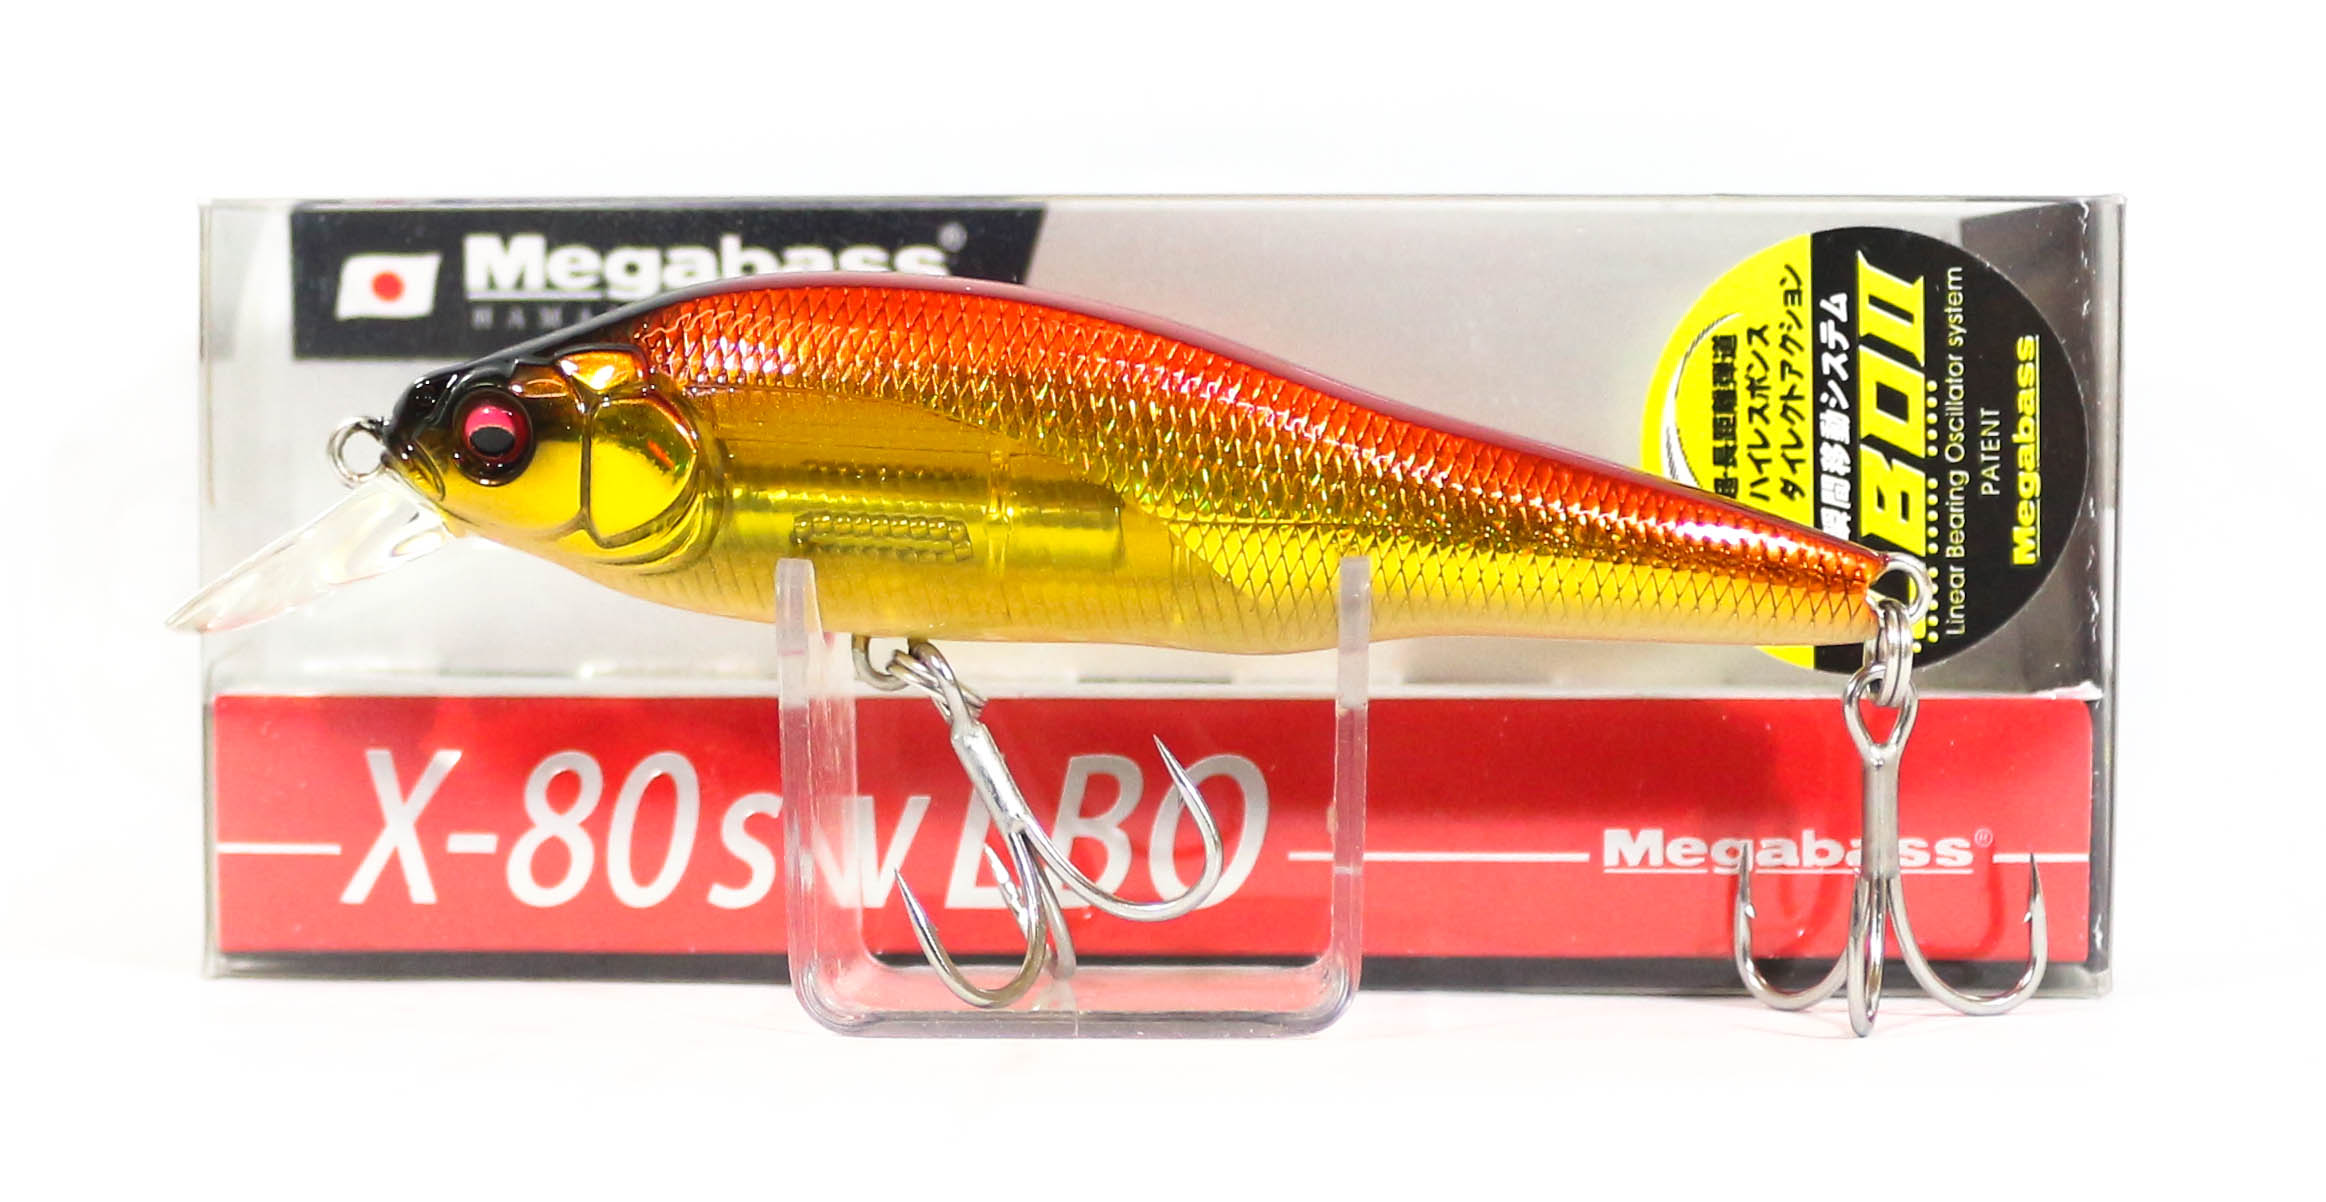 1843 Megabass X-80 SW Slow Sinking Lure PM Hot Shad